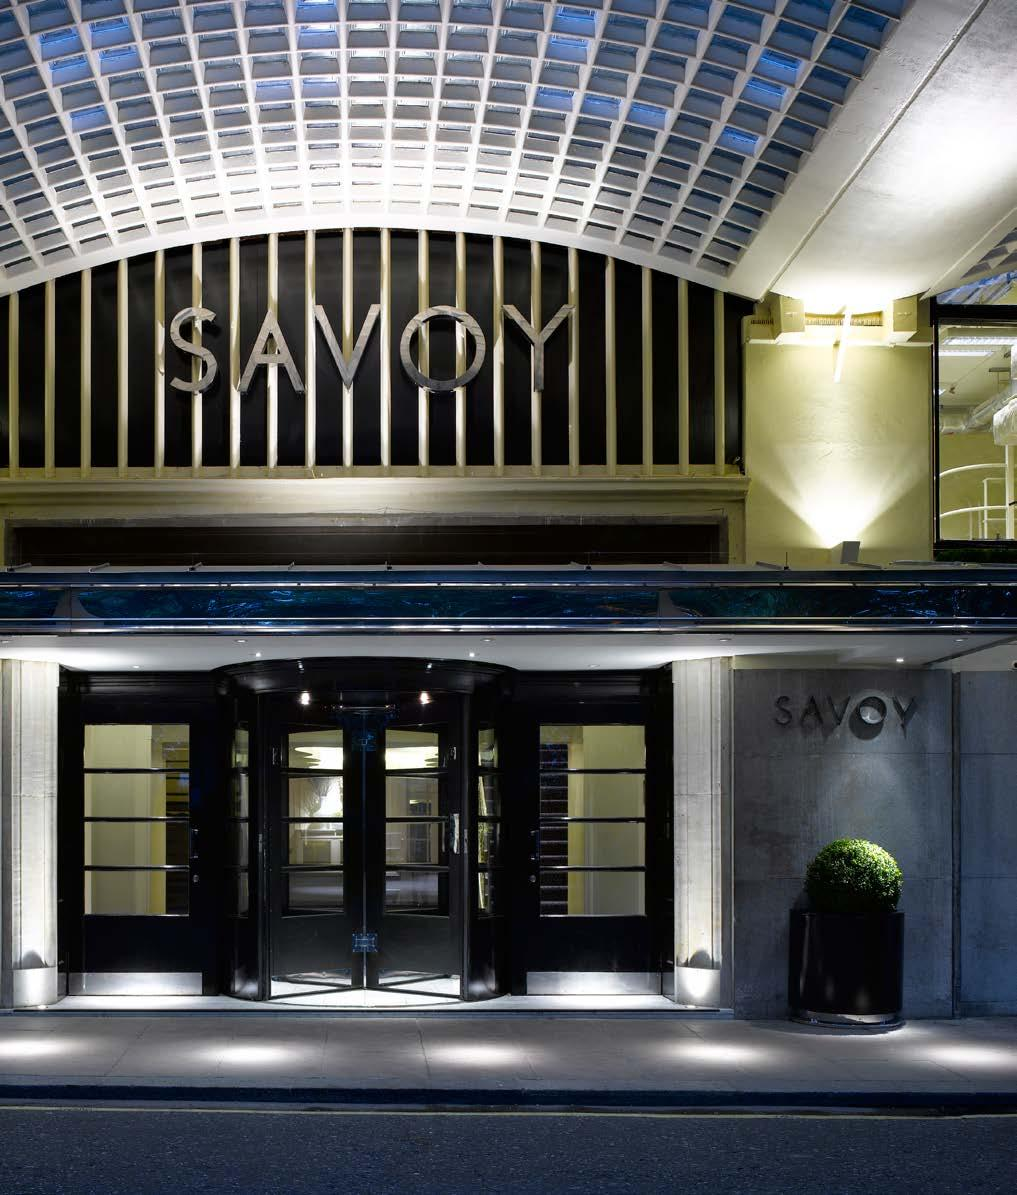 Hotel Options Savoy 5* To stay at The Savoy is to follow in the footsteps of Sir Winston Churchill, Frank Sinatra, Maria Callas, Claude